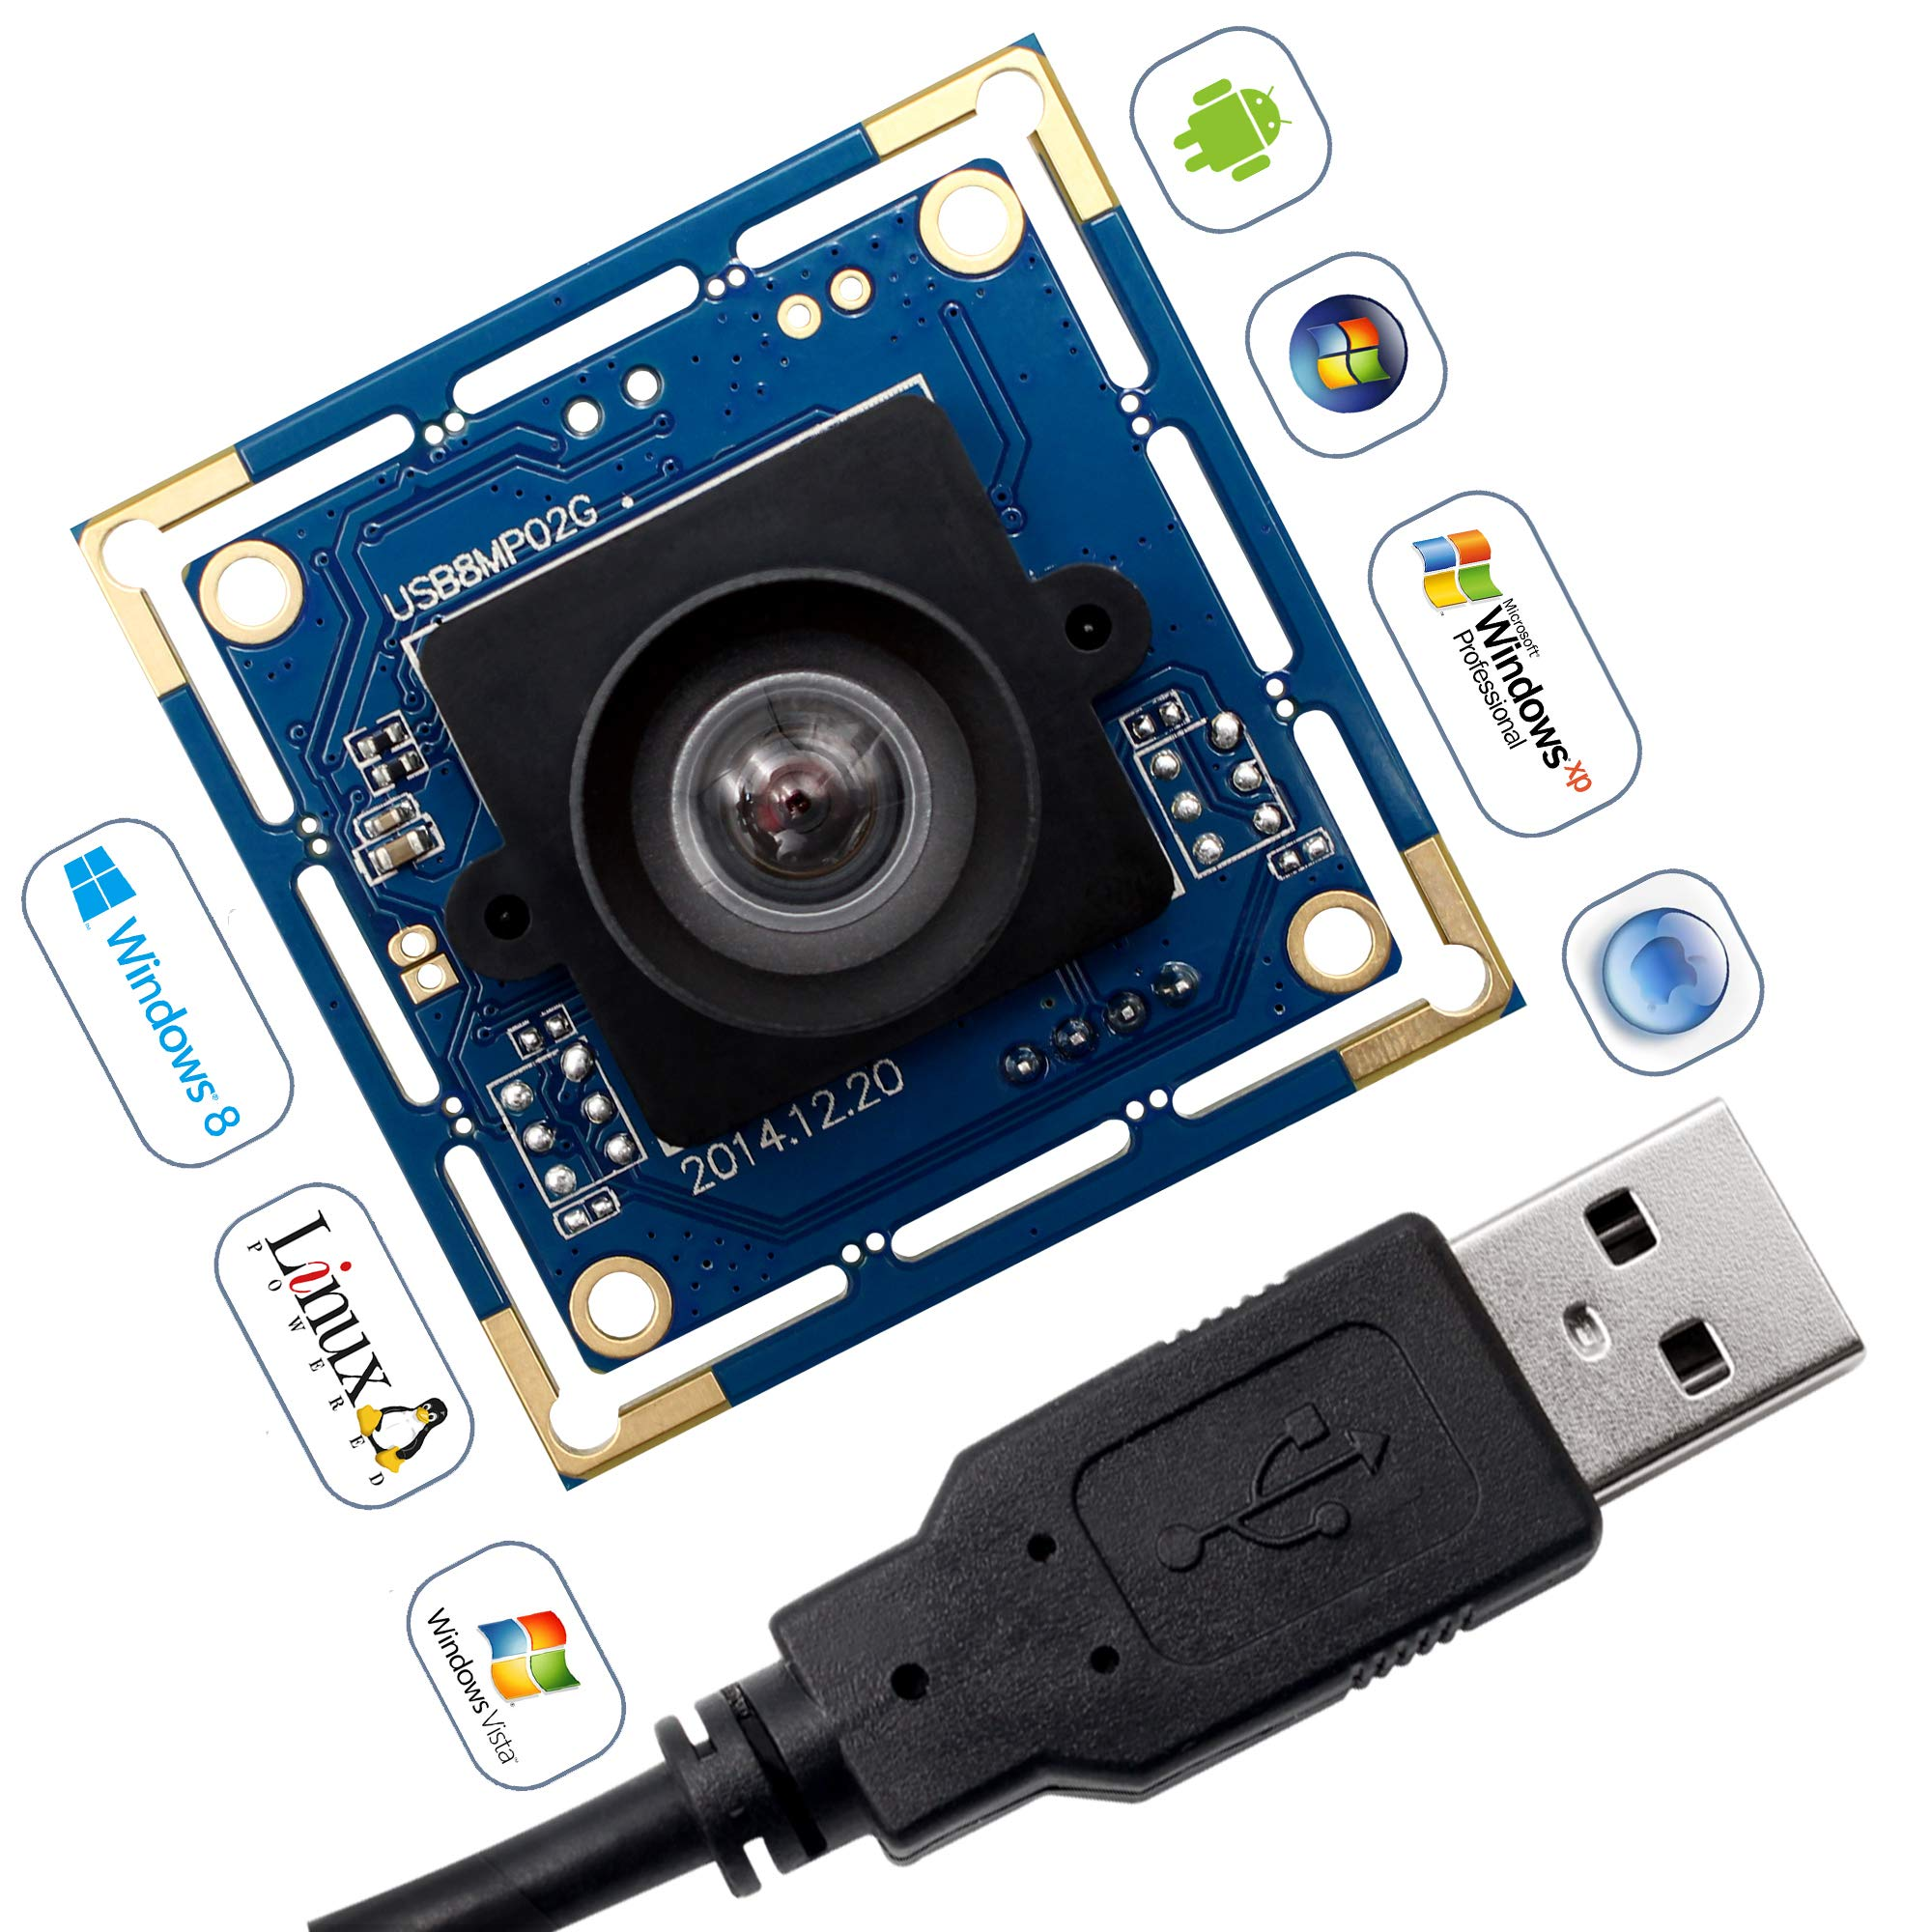 8 Magepixel USB Camera Module with Sony IMX179 Sensor Webcam Super HD 3264X2448 Embeded USB Camera for Industrial,USB with Camera for Linux Windows Android Mini Web Cams Plug&Play OTG Supported Webcam